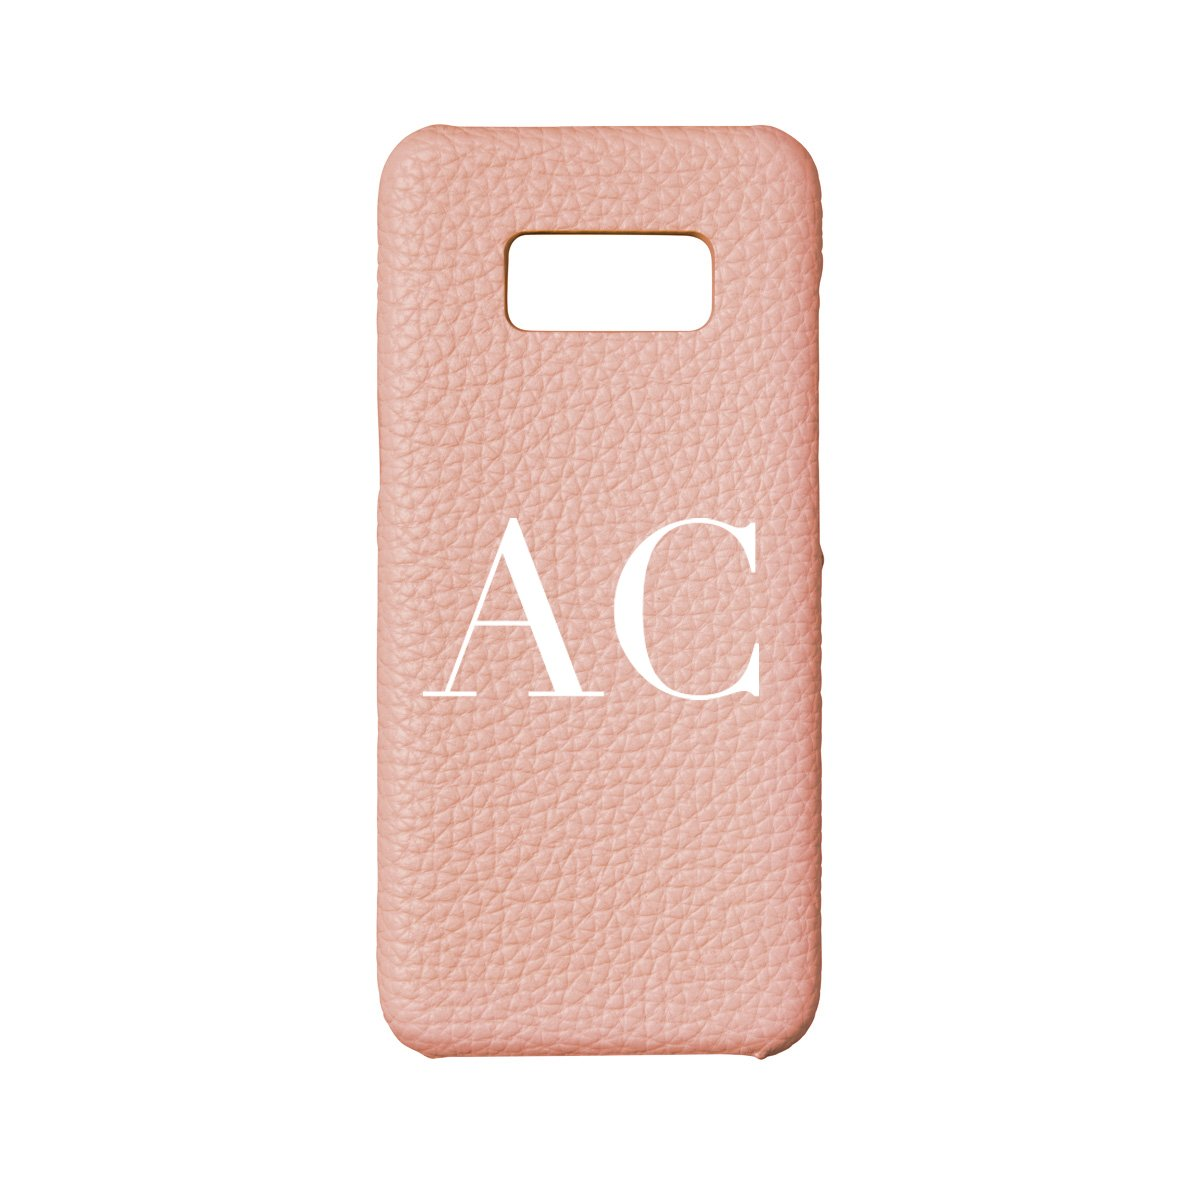 Blush Pink Phone Case (Samsung 8)